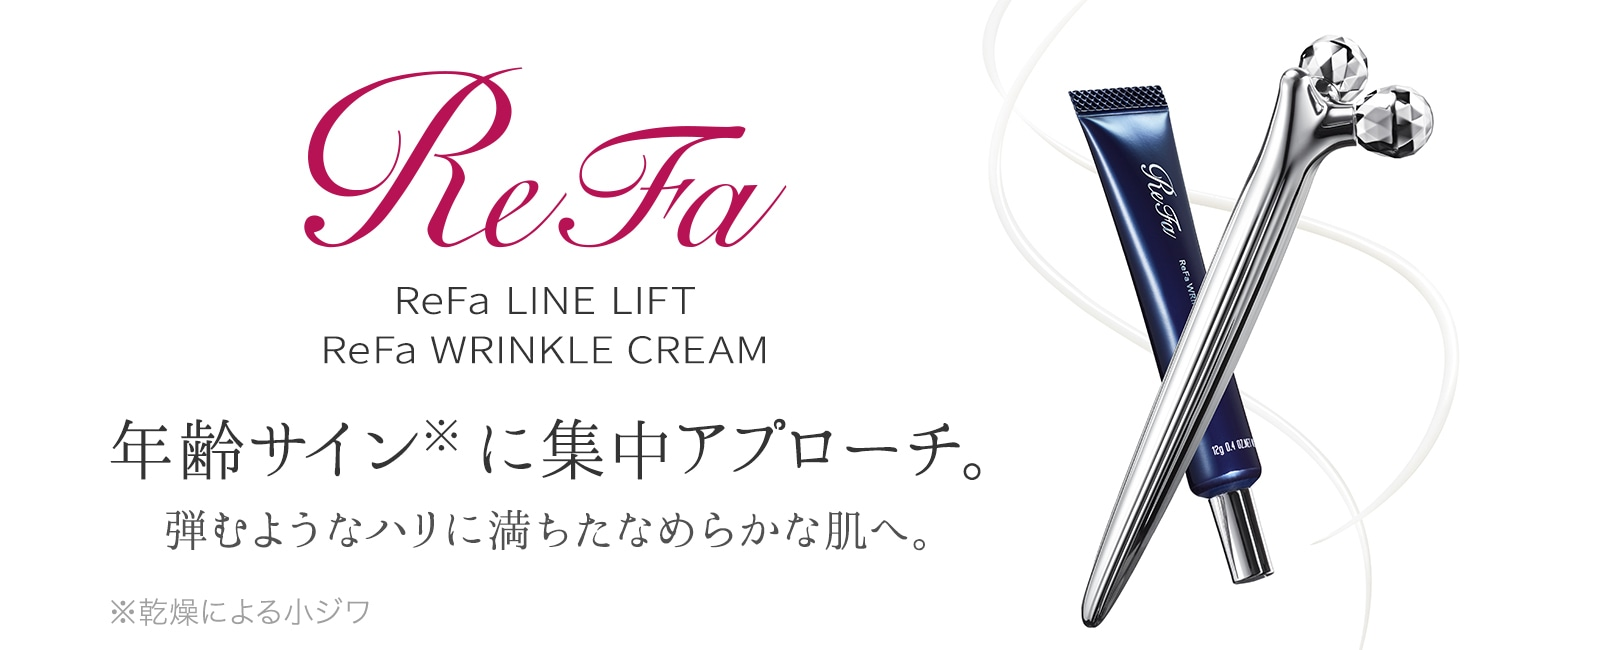 ReFa LINE LIFT & ReFa WRINKLE CREAM 販売開始いたしました